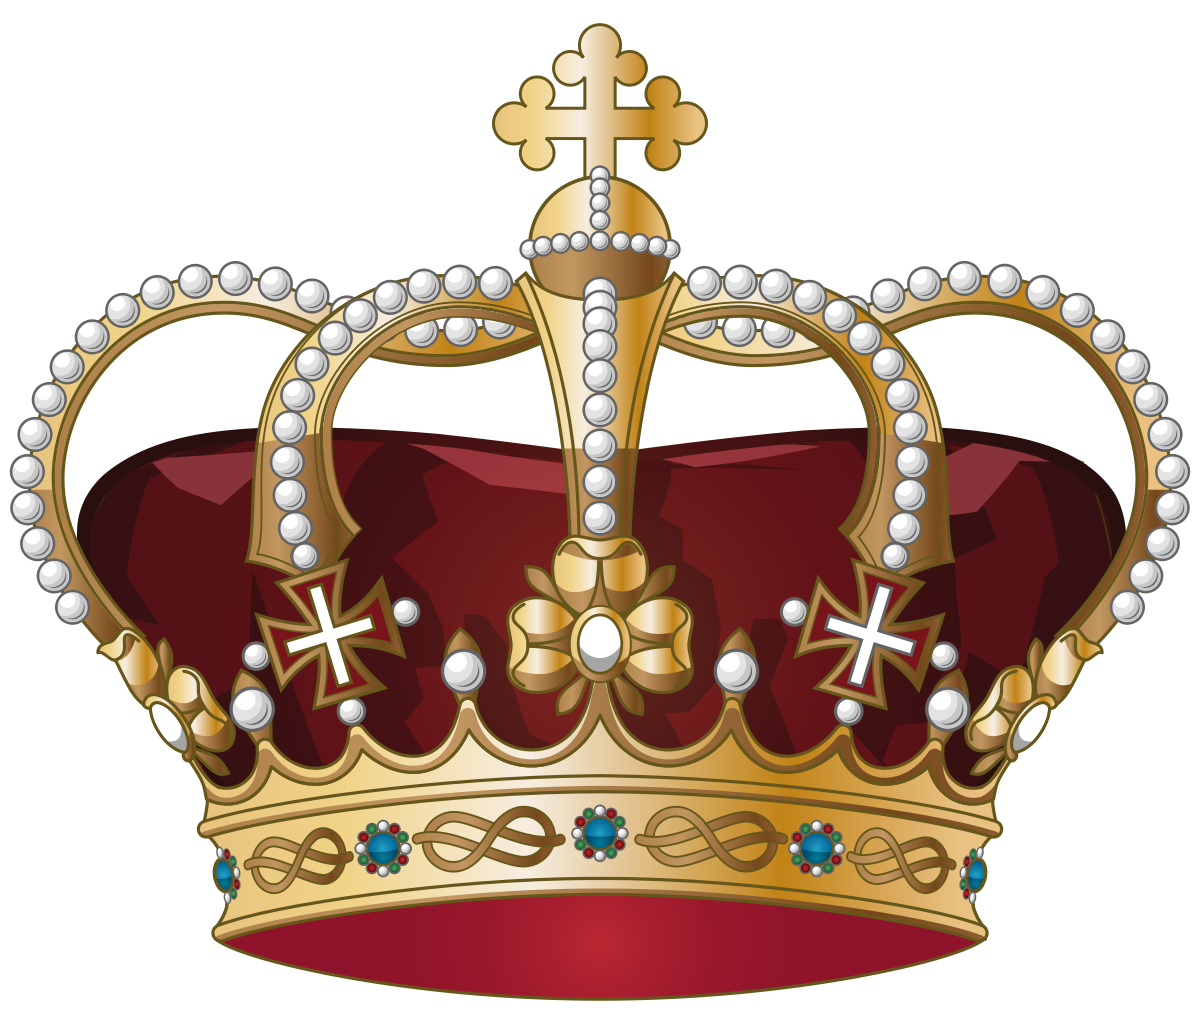 English crown clipart image library library File:Crown of Italy.svg - Wikipedia image library library